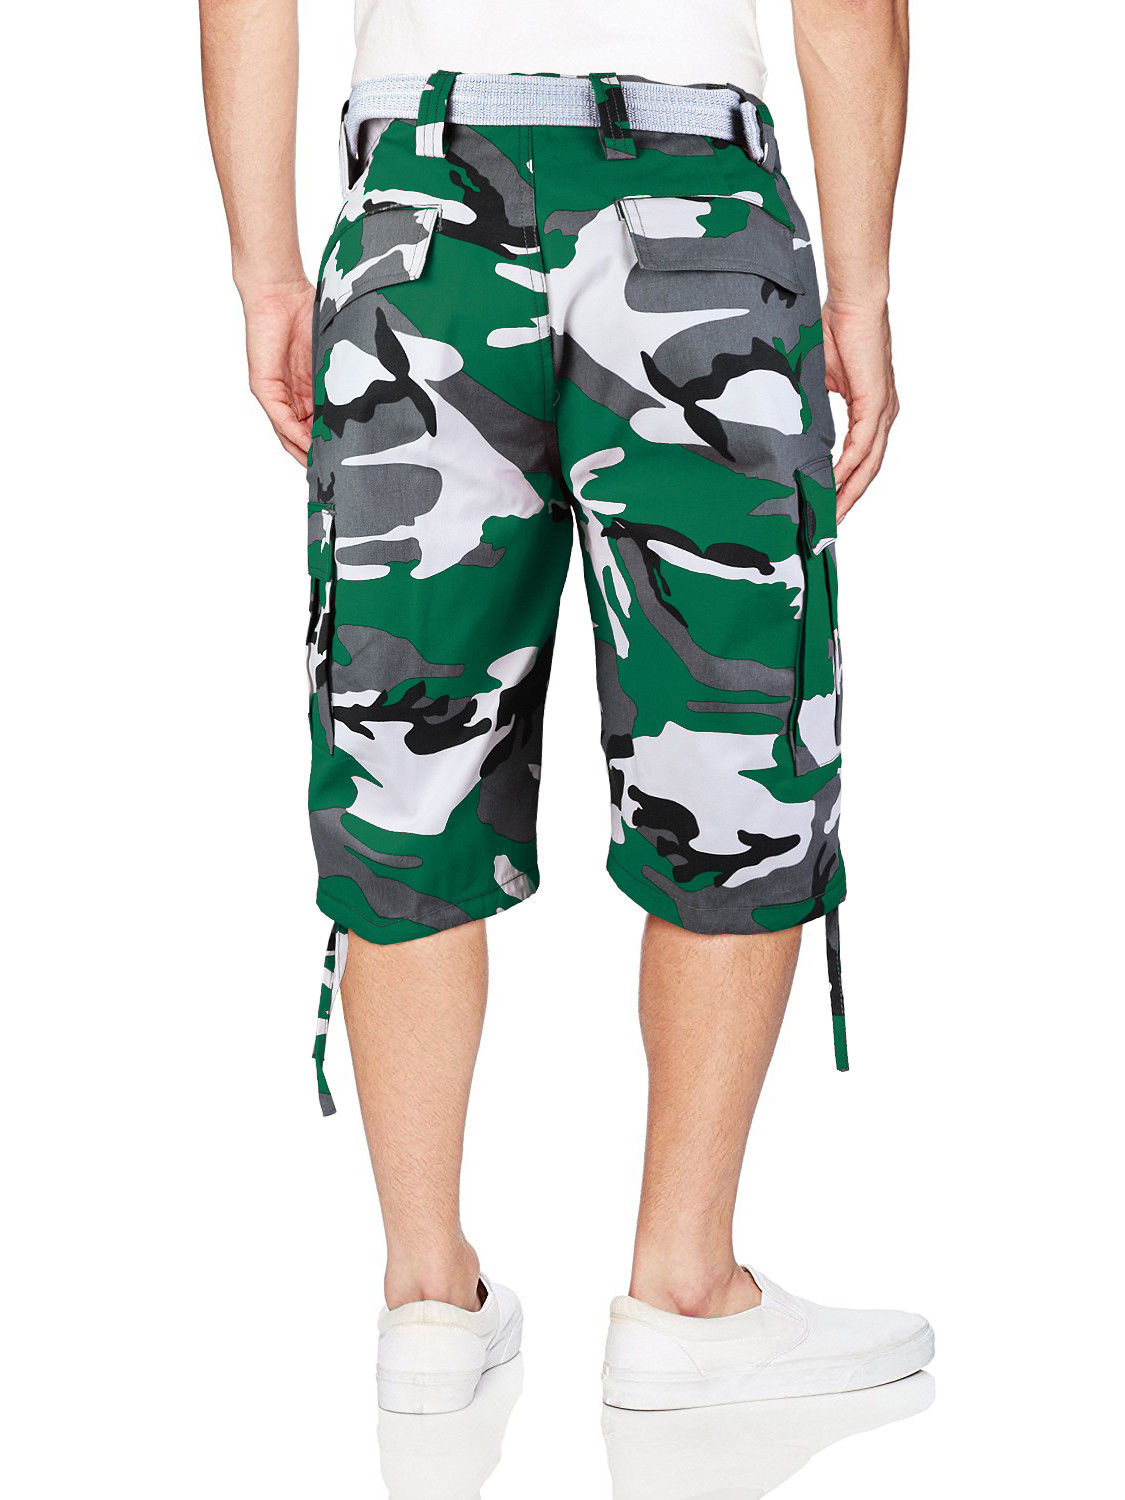 Men-039-s-Tactical-Military-Army-Camo-Camouflage-Slim-Fit-Cargo-Shorts-With-Belt thumbnail 9